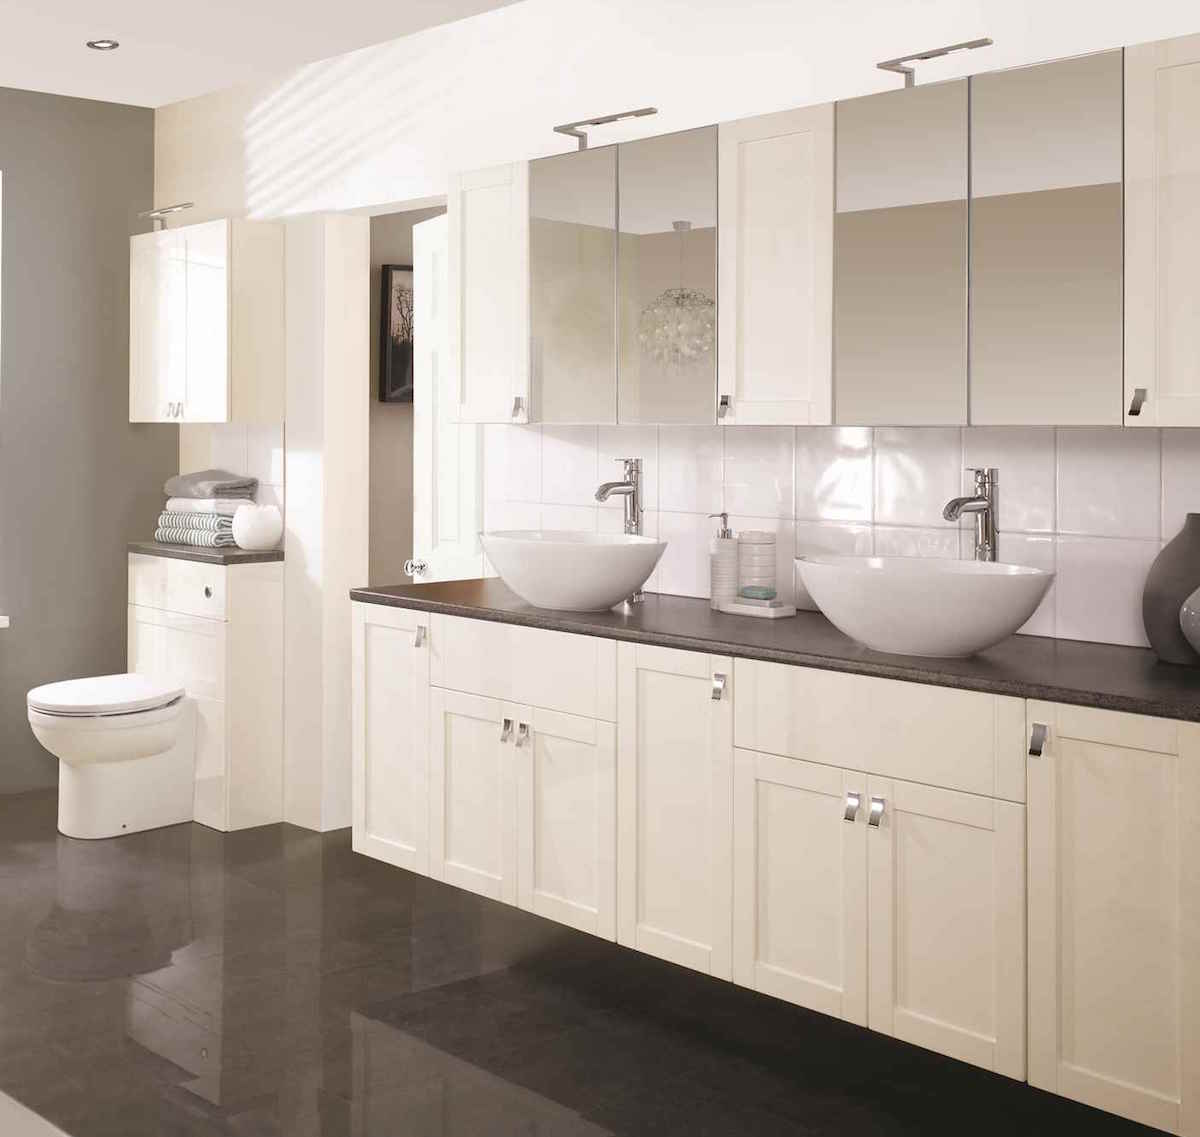 Bathroom showrooms shrewsbury - Bathroomfurnitureshrewsbury